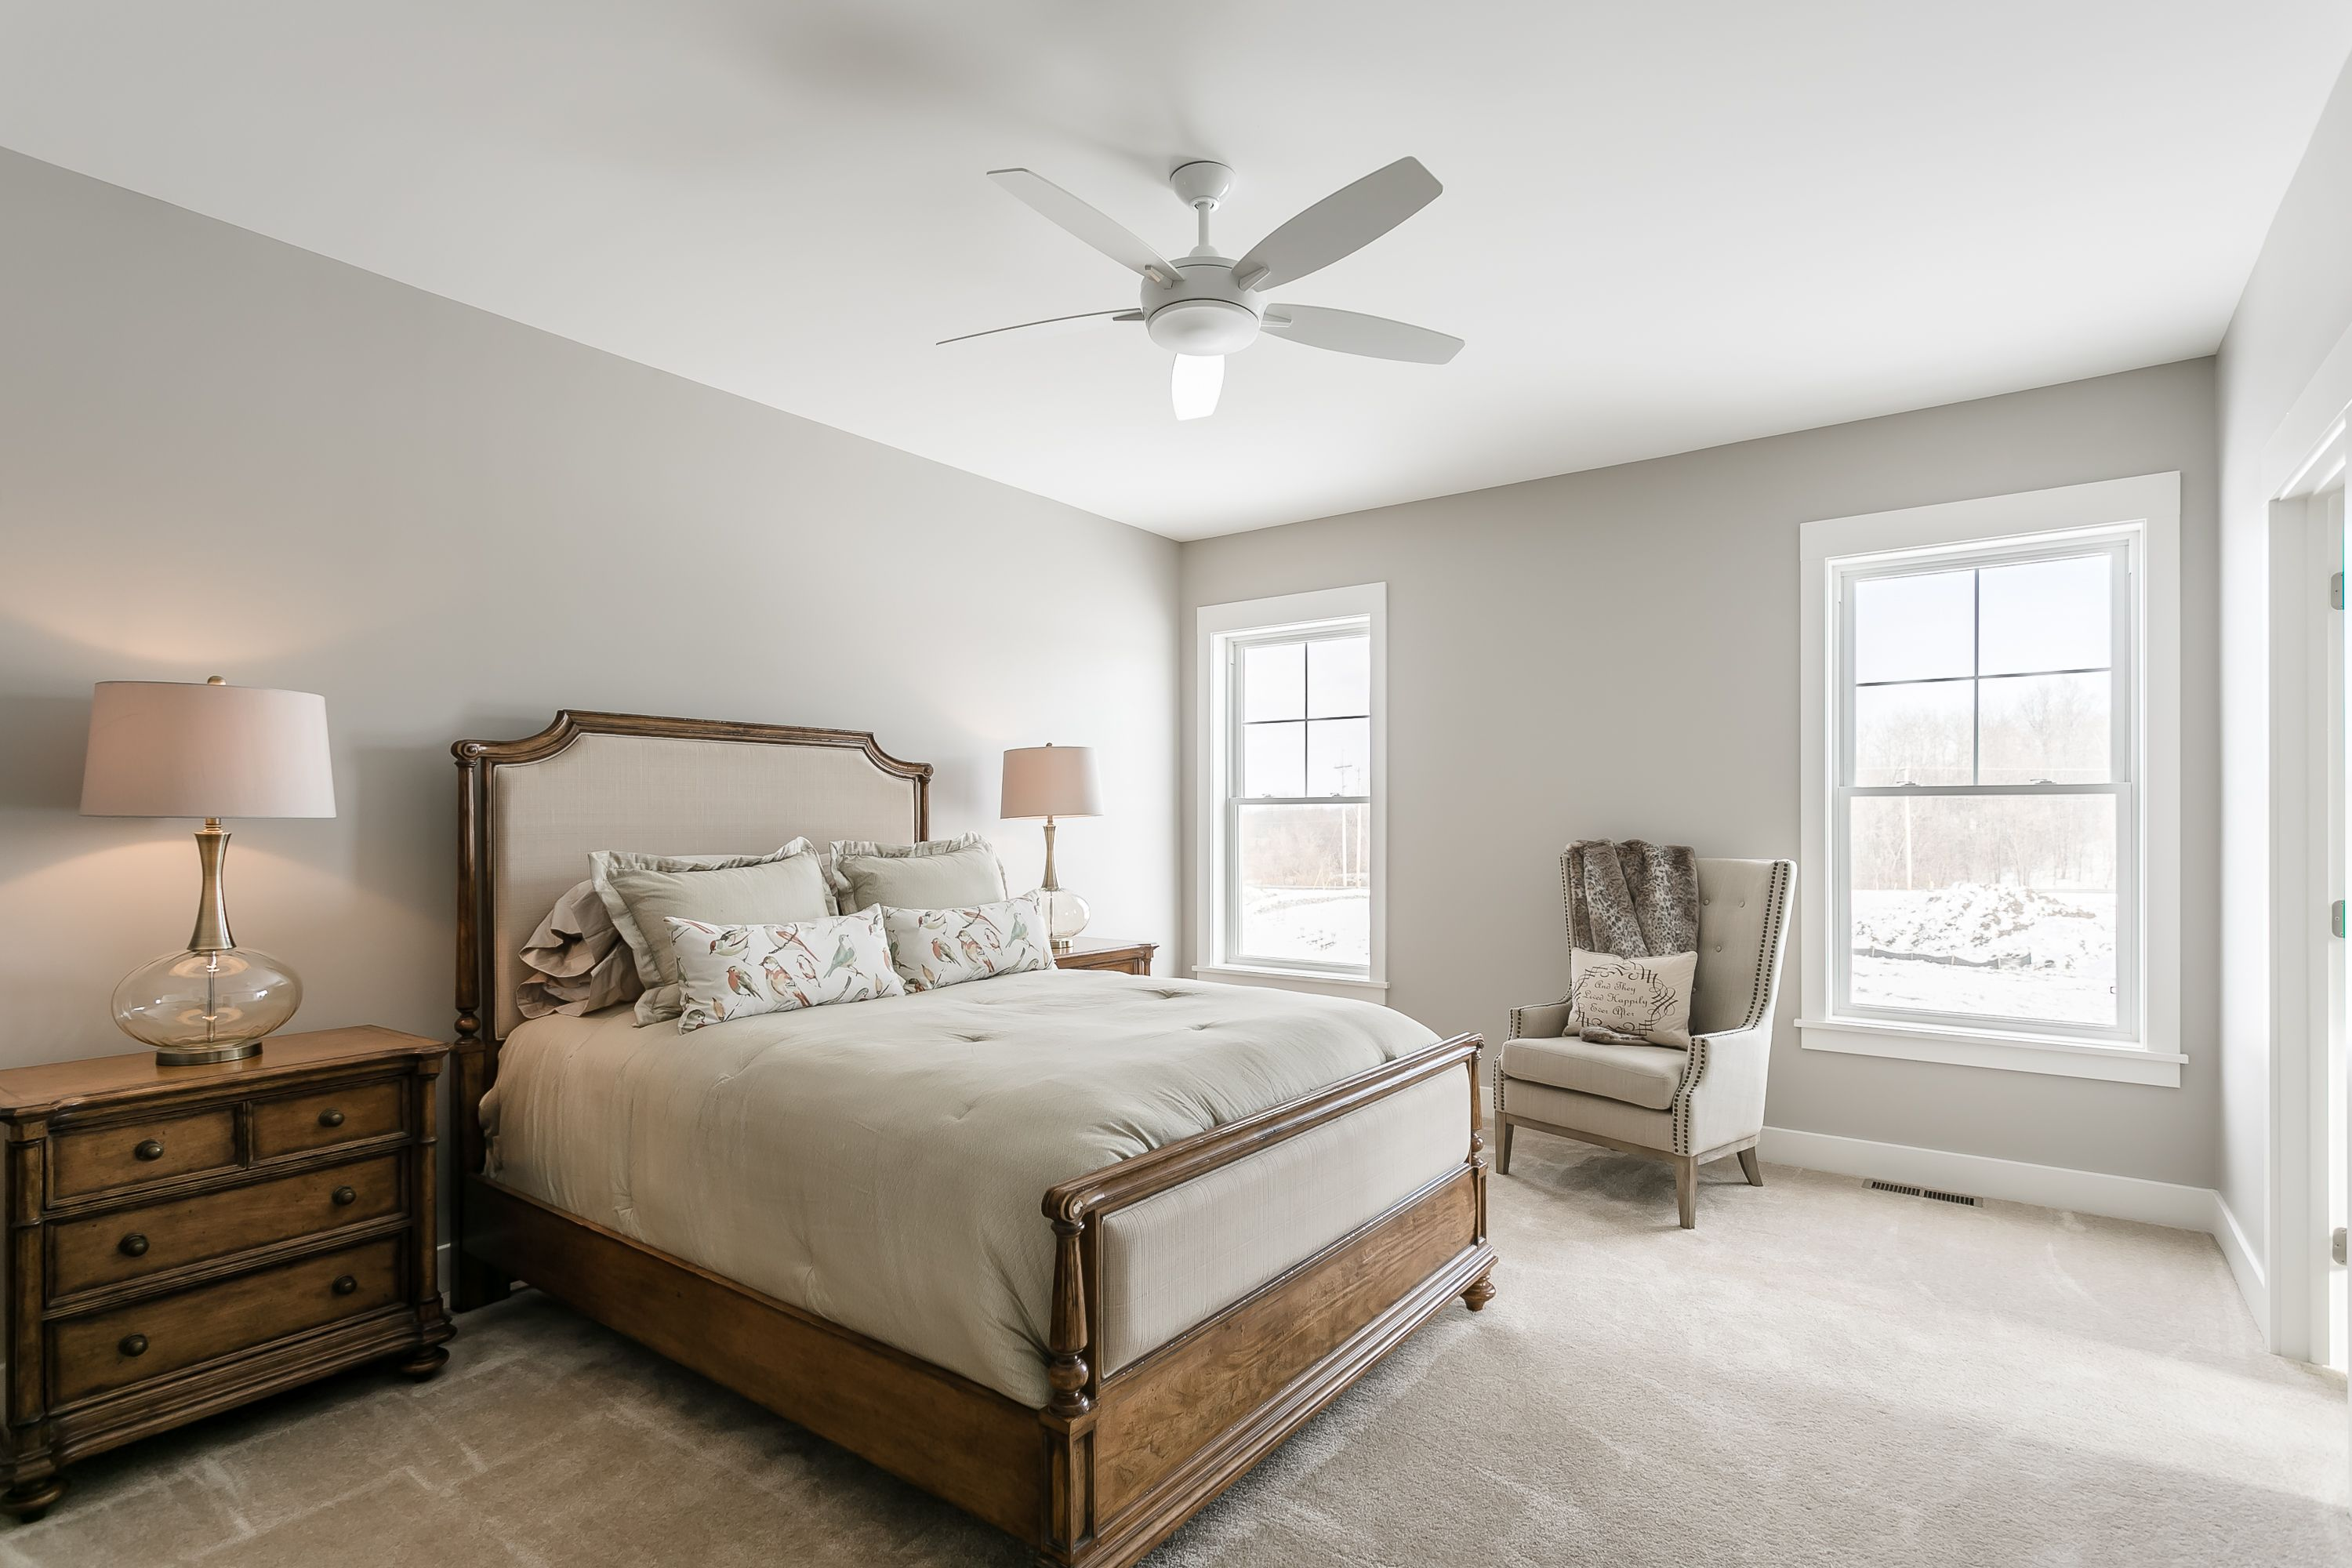 Bedroom featured in The Wellfleet By Riedman Homes in Rochester, NY